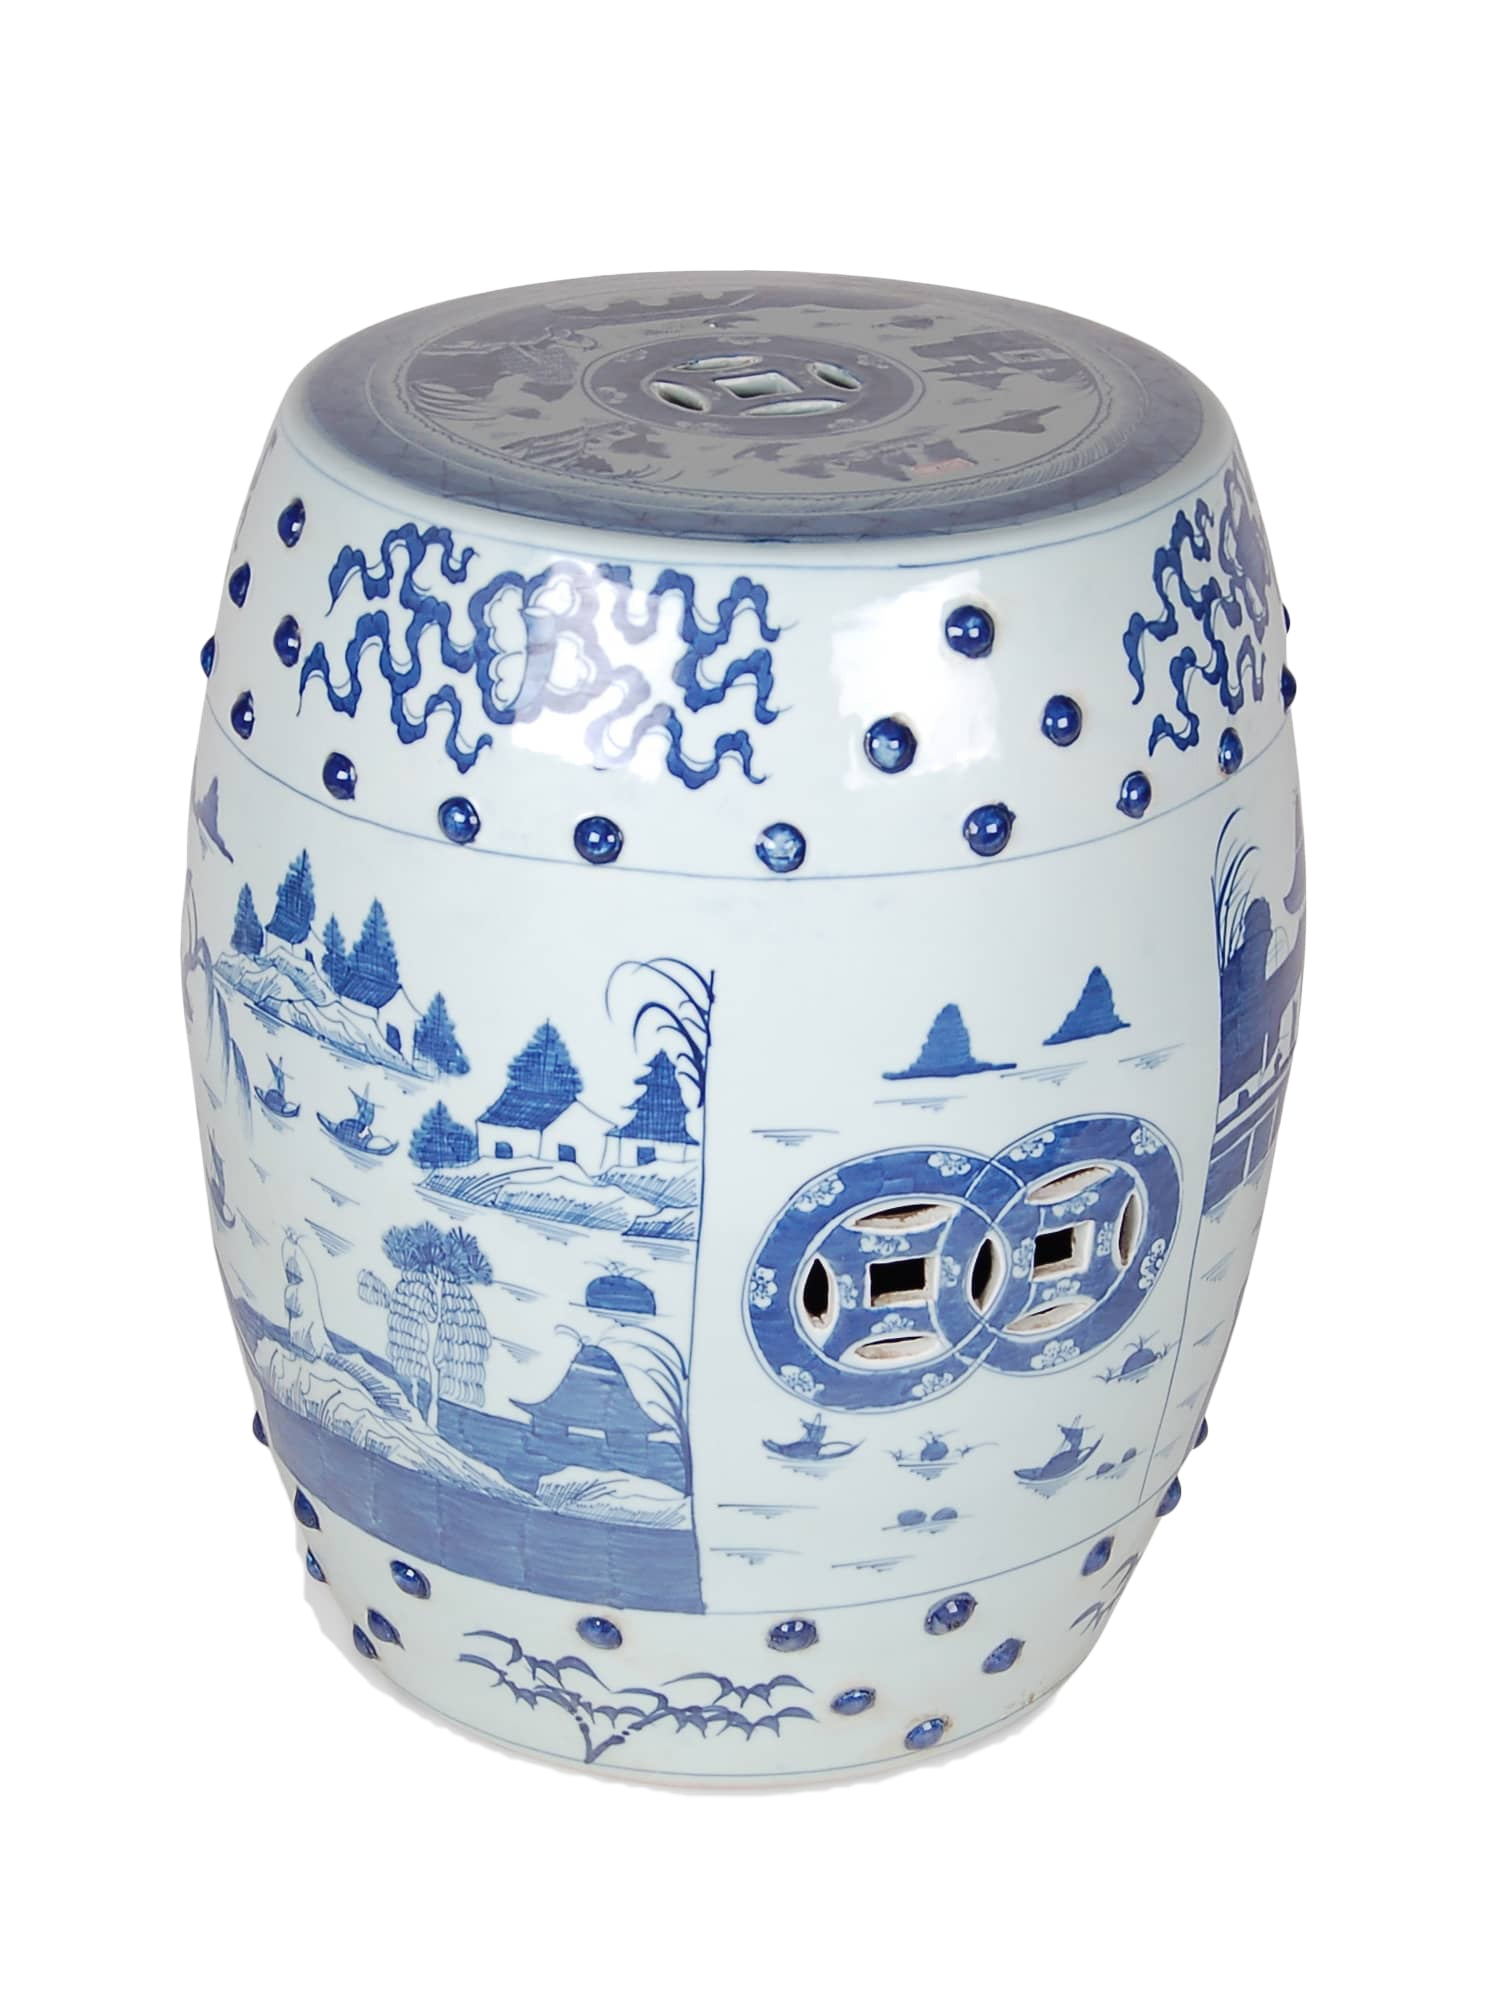 Large Blue & White Garden Stool - Amy Berry Home